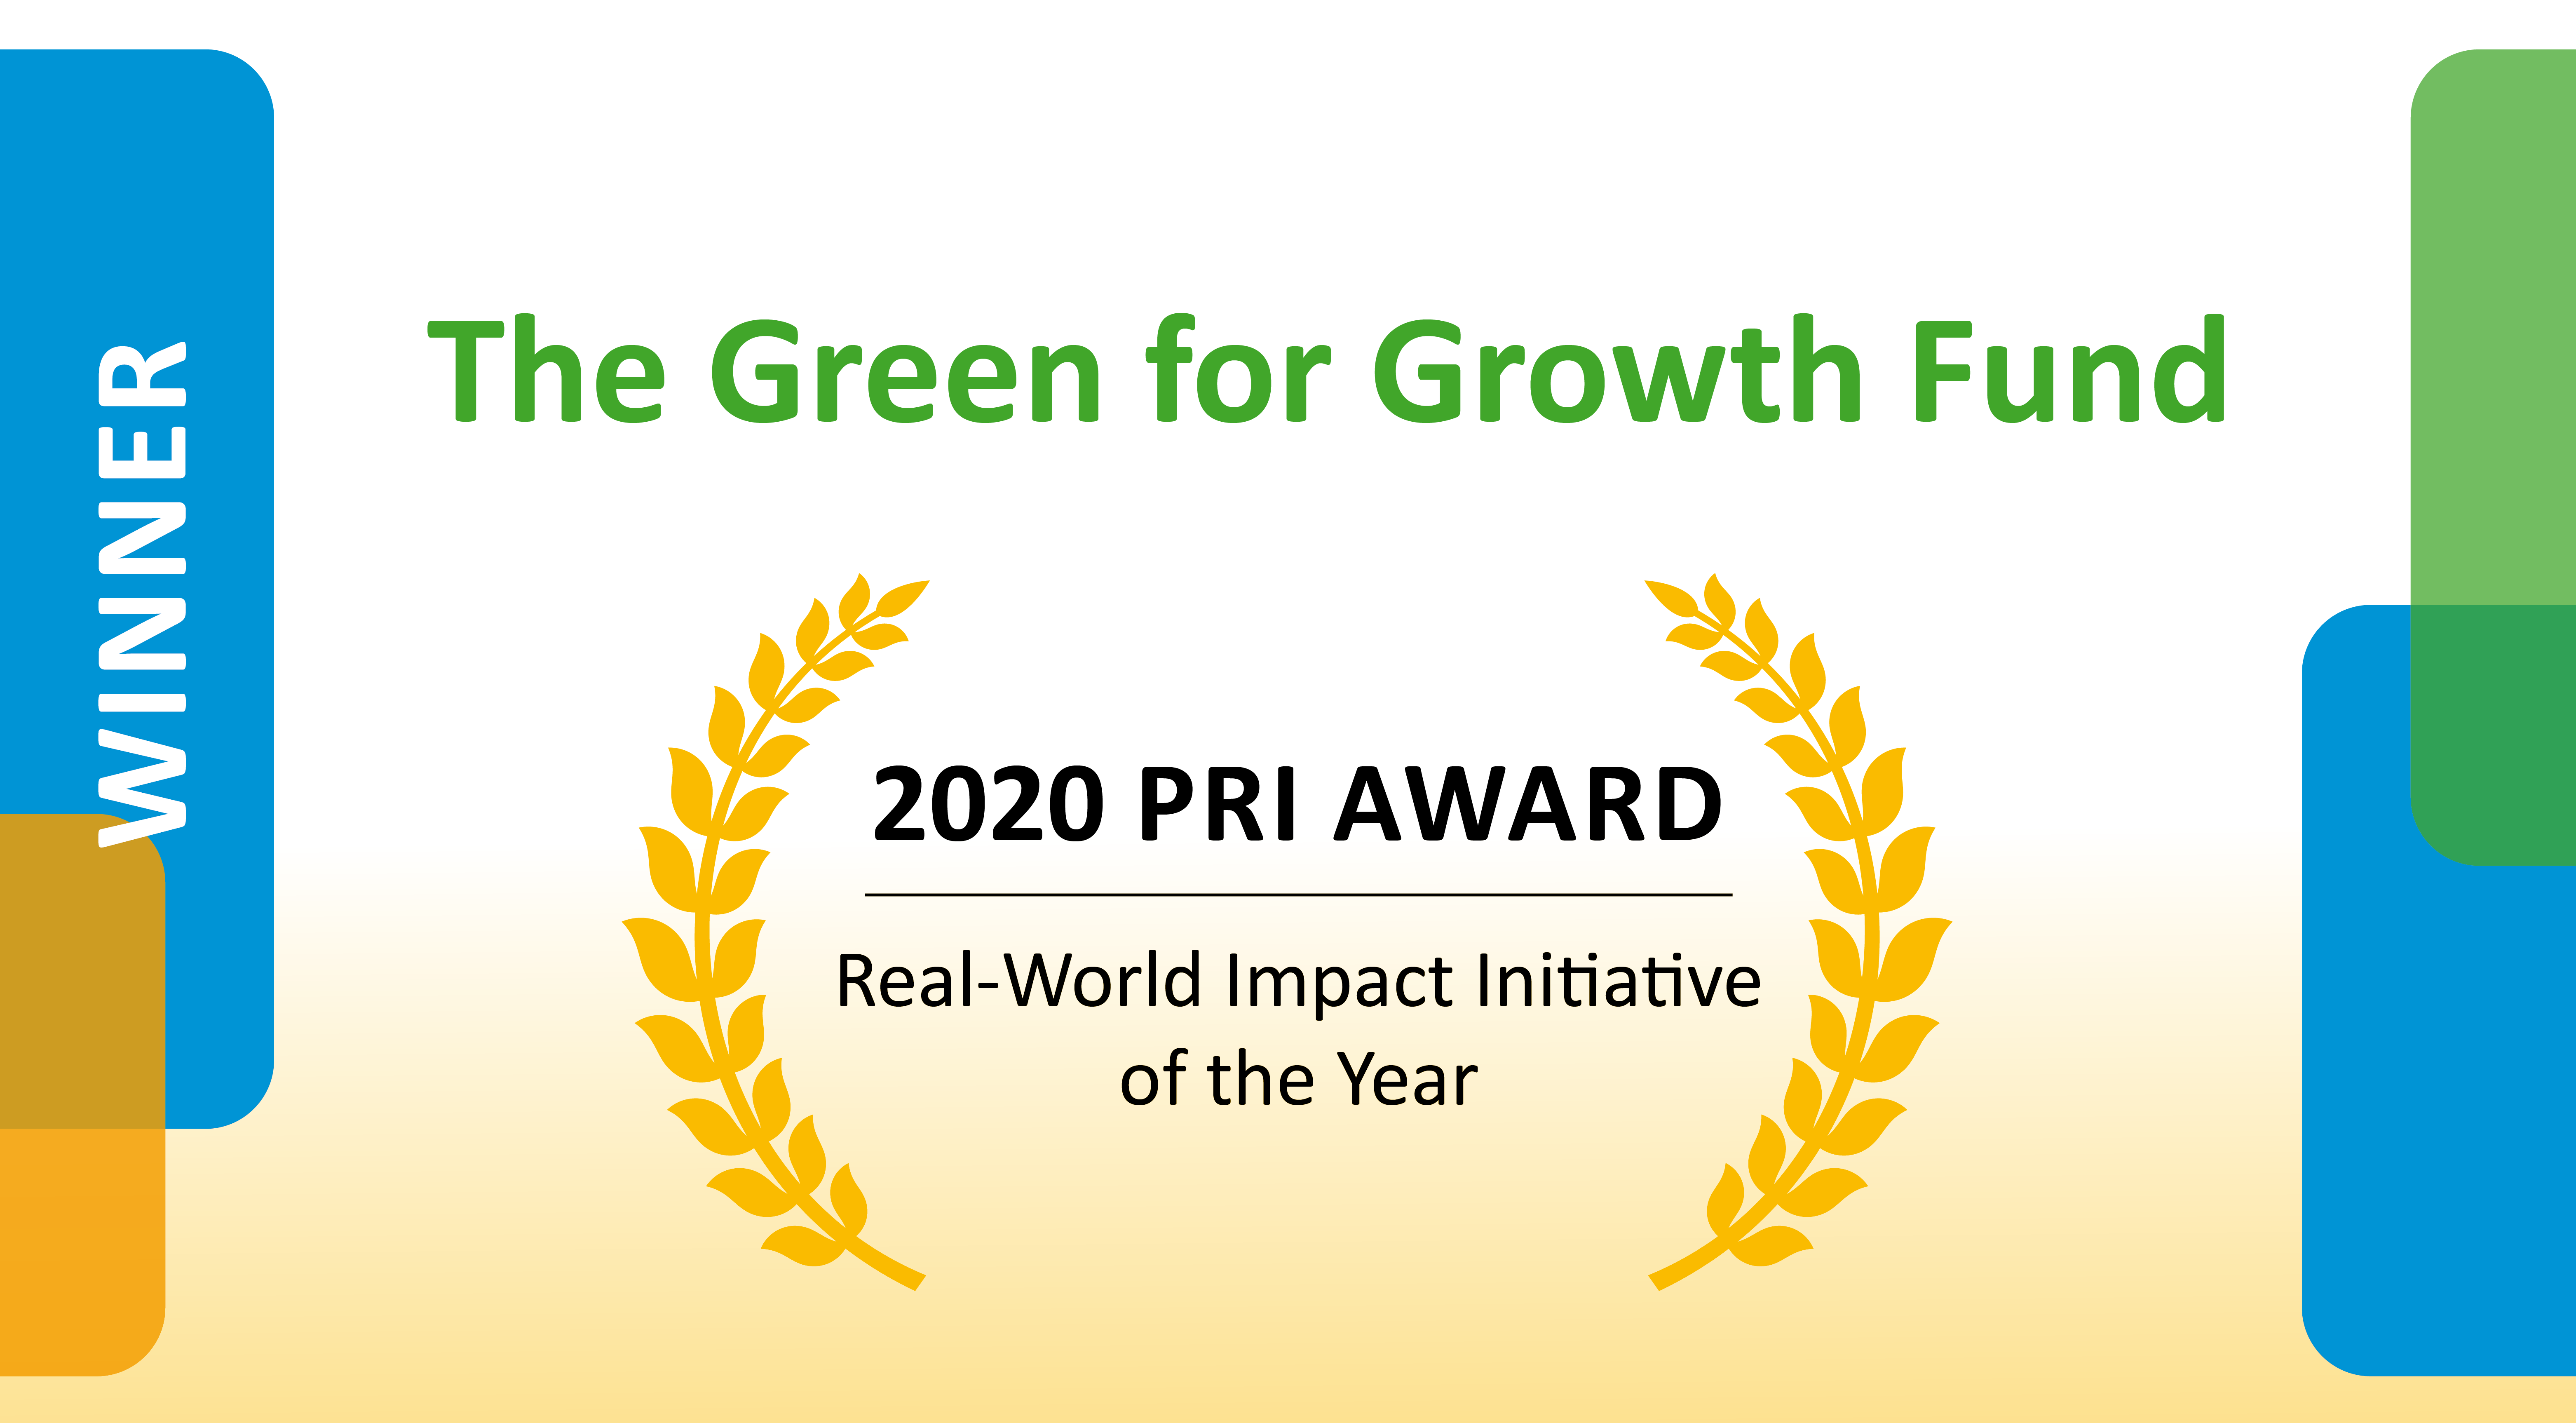 2020 PRI Award Certificate – Awarded to the Green For Growth Fund